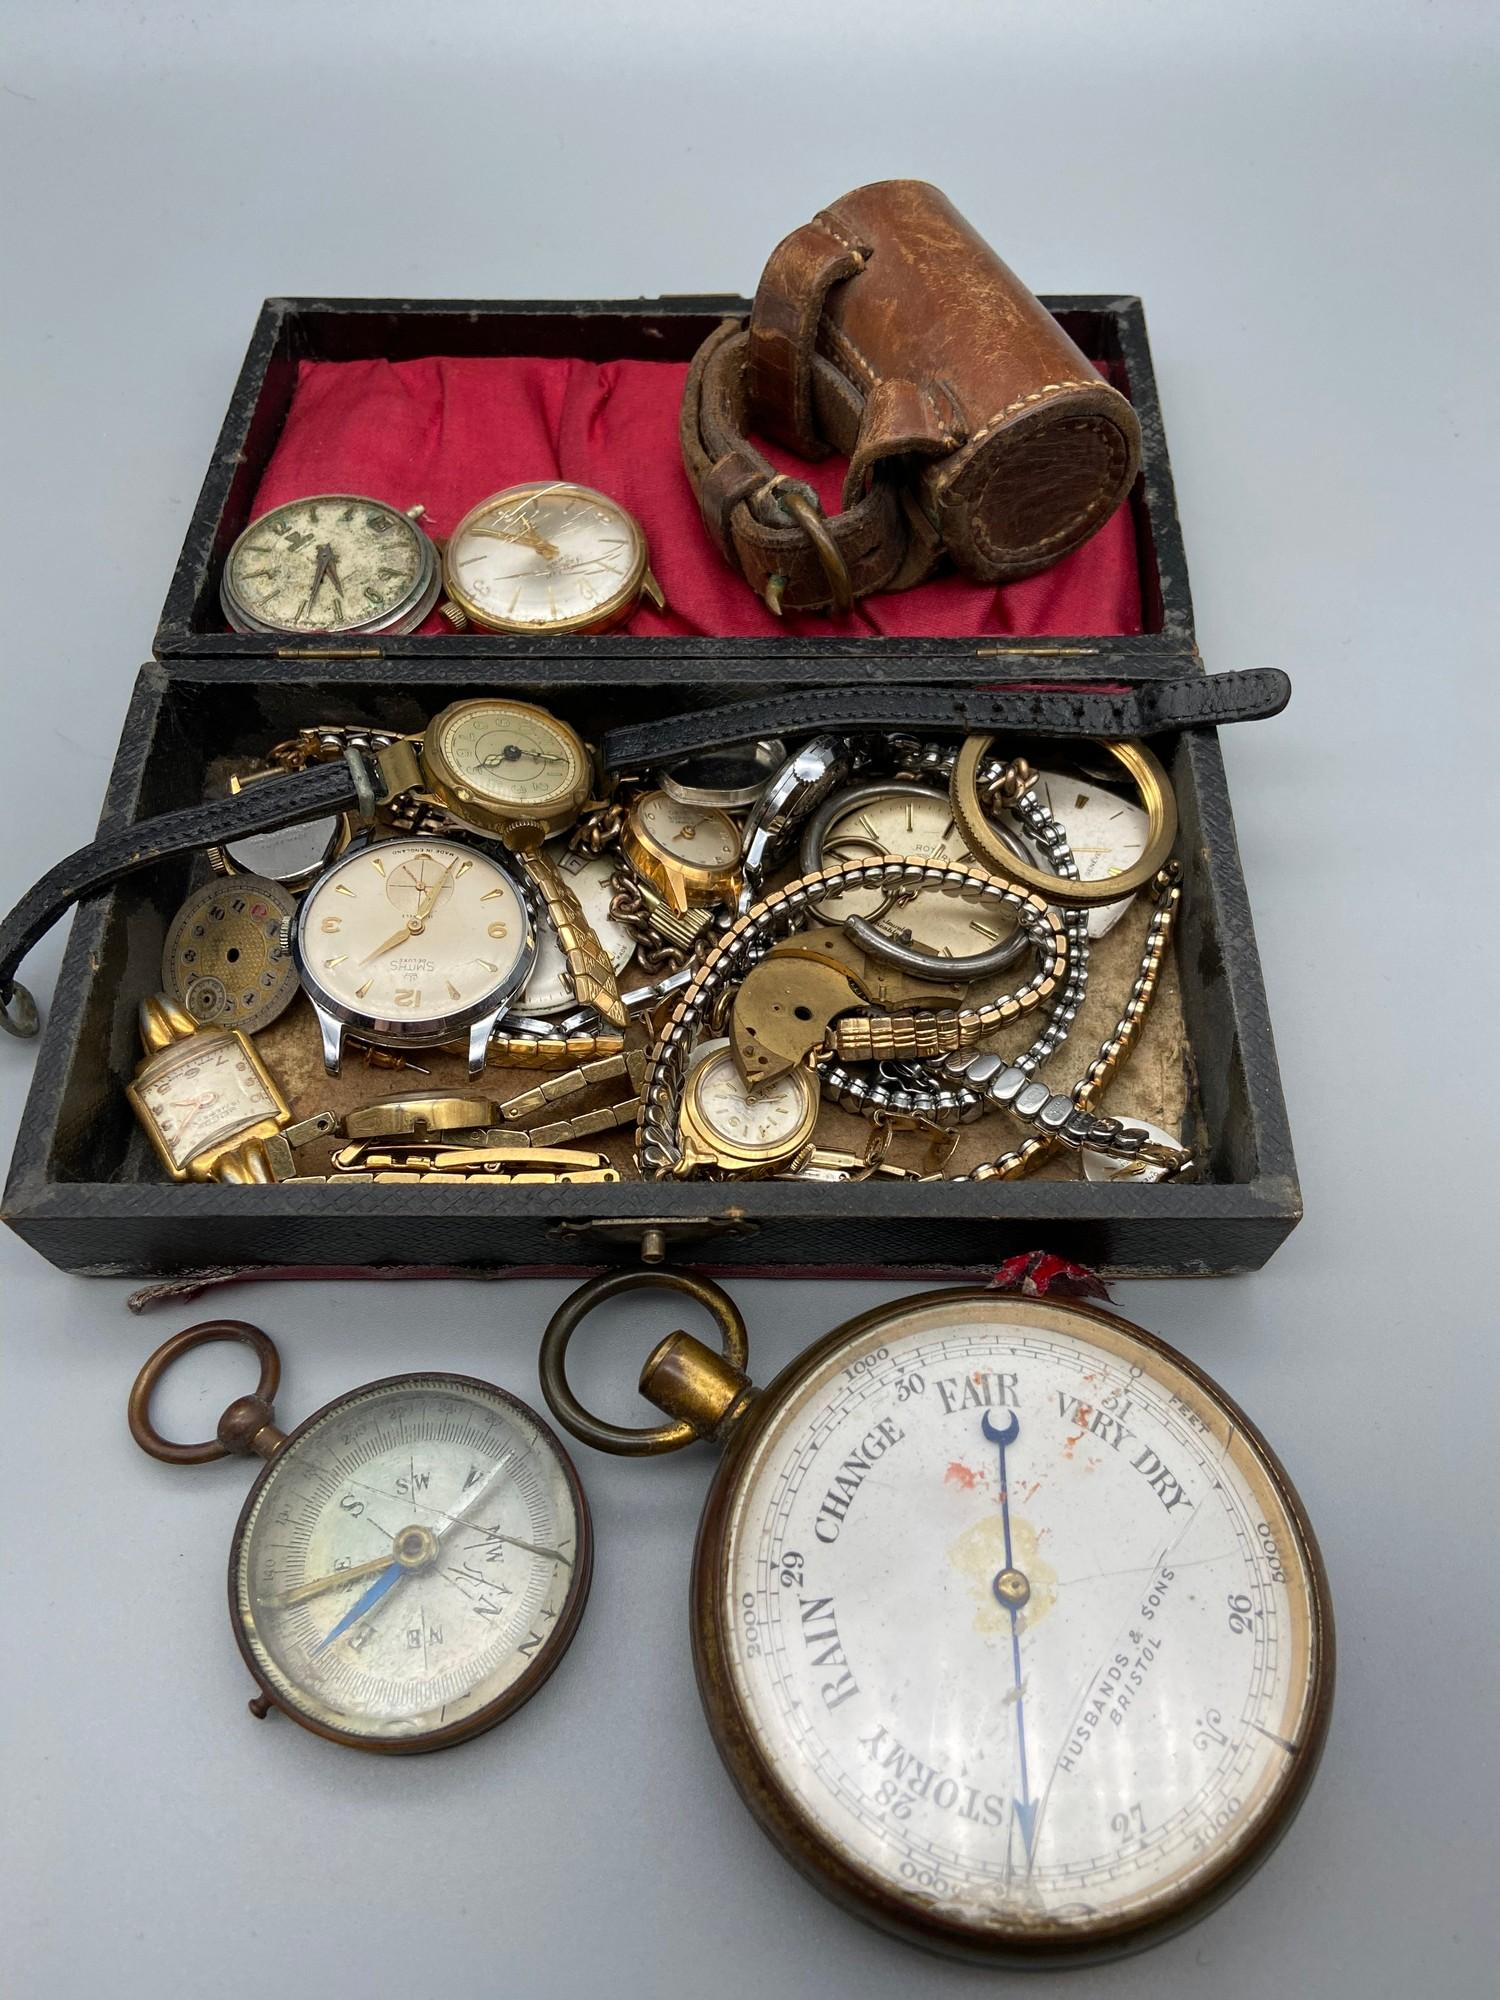 Lot 54 - A Quantity of antique and vintage watches which includes Husbands & Sons Bristol pocket barometer,